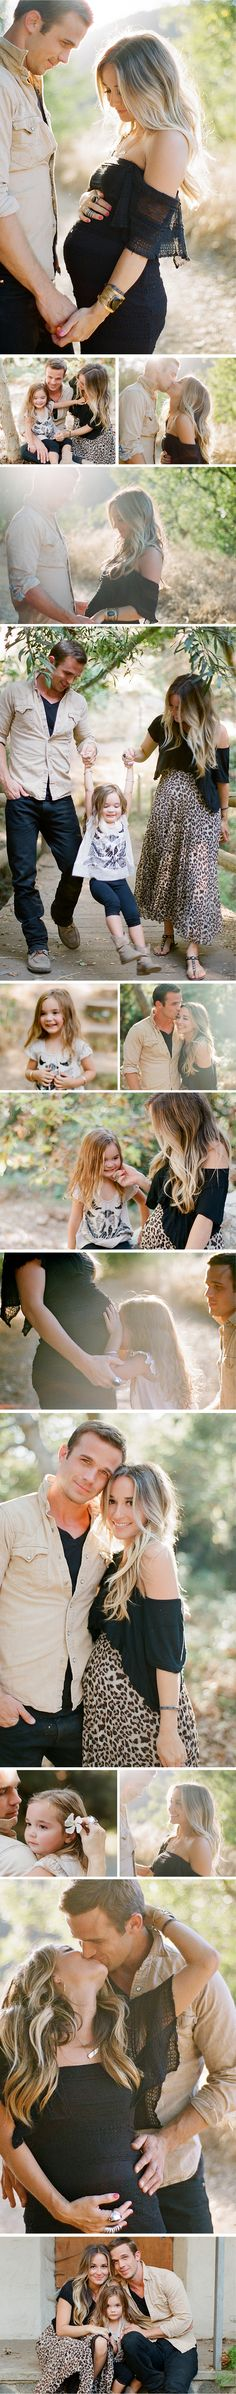 The only cute maternity shoot I have ever seen